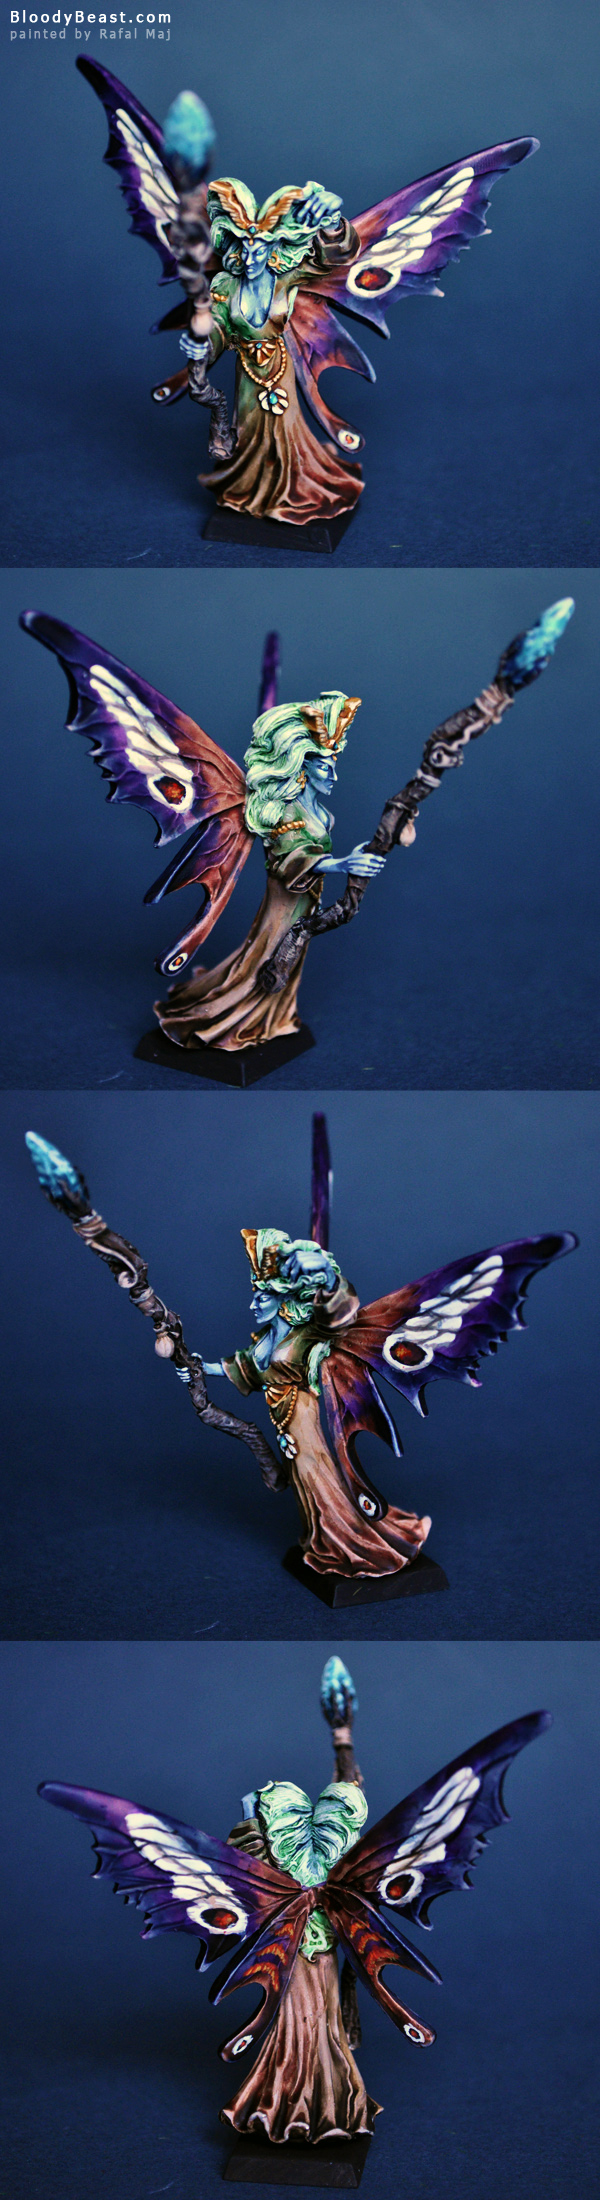 Ariel the Queen of the Wood painted by Rafal Maj (BloodyBeast.com)